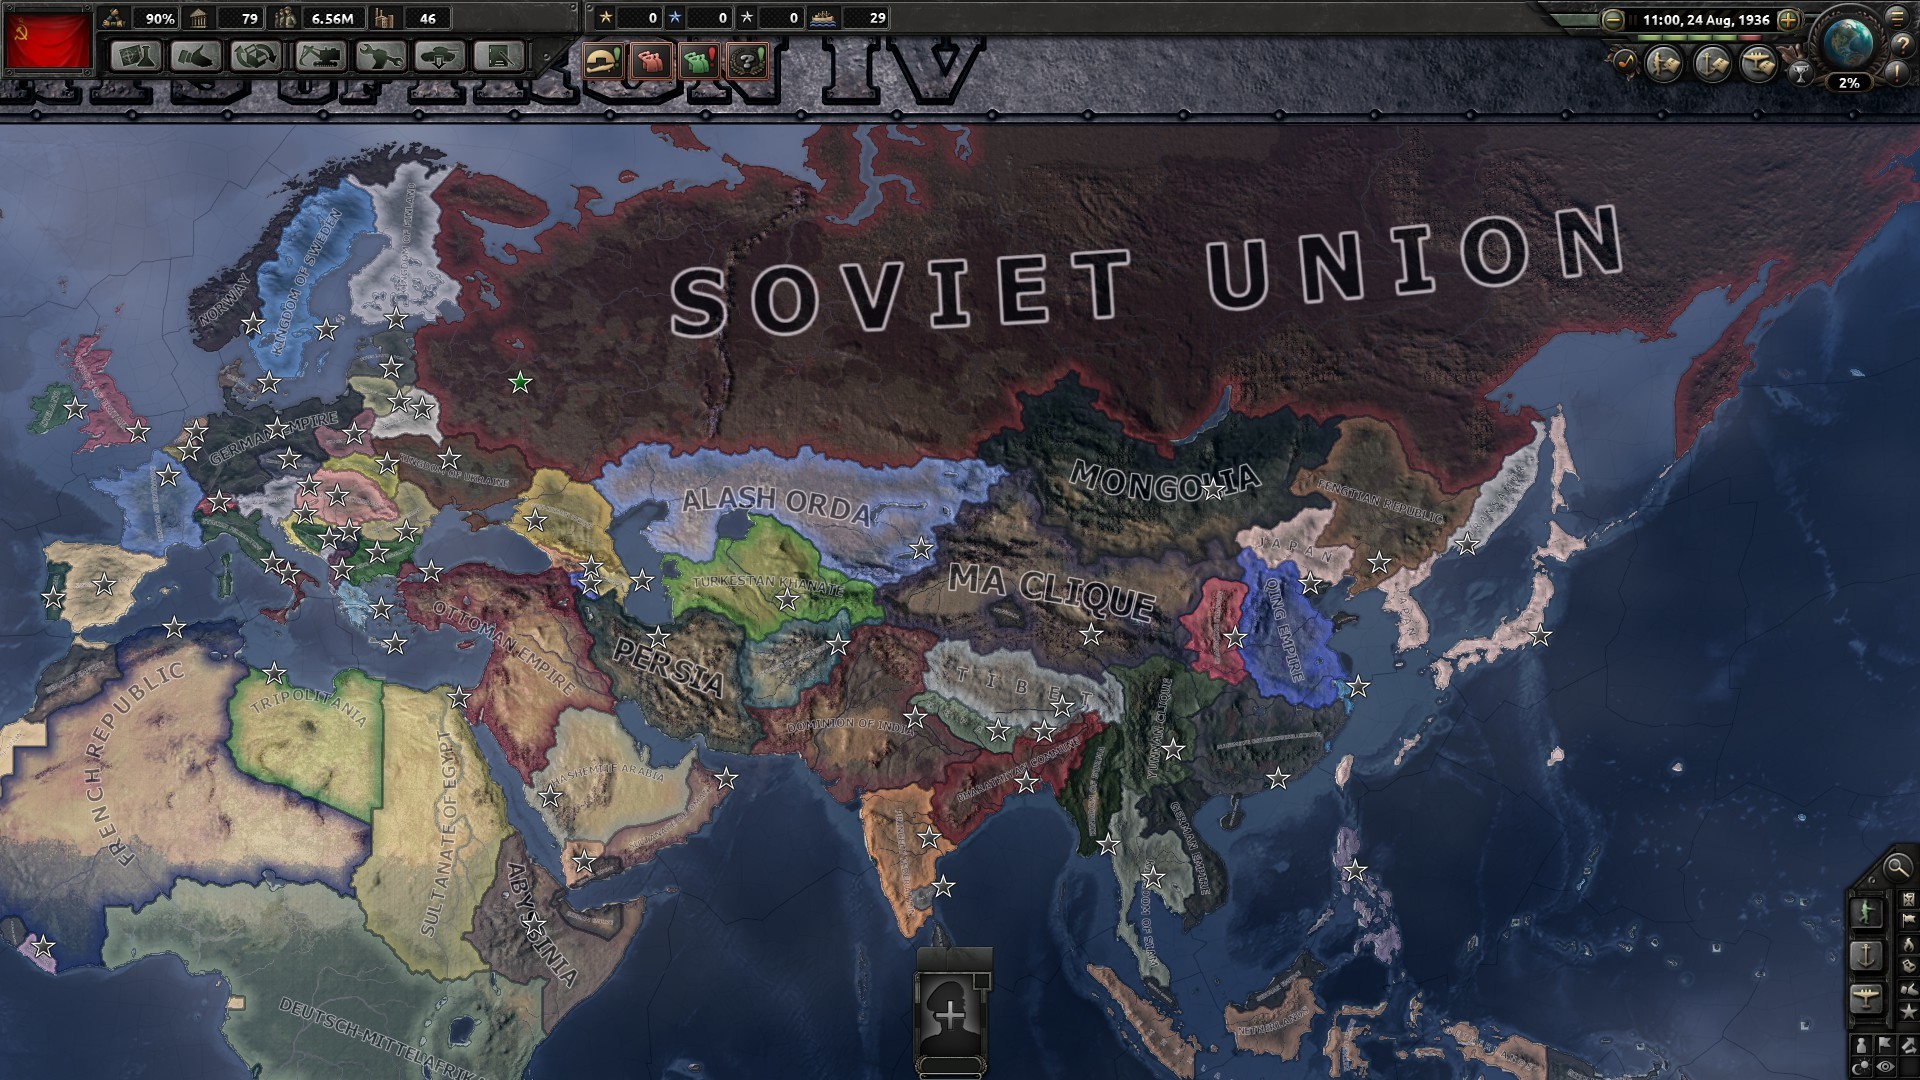 1920x1080 You have reformed the glorious Soviet Union! Now it is time to conquer and  reunite previous Russian lands! Thank you for reading!